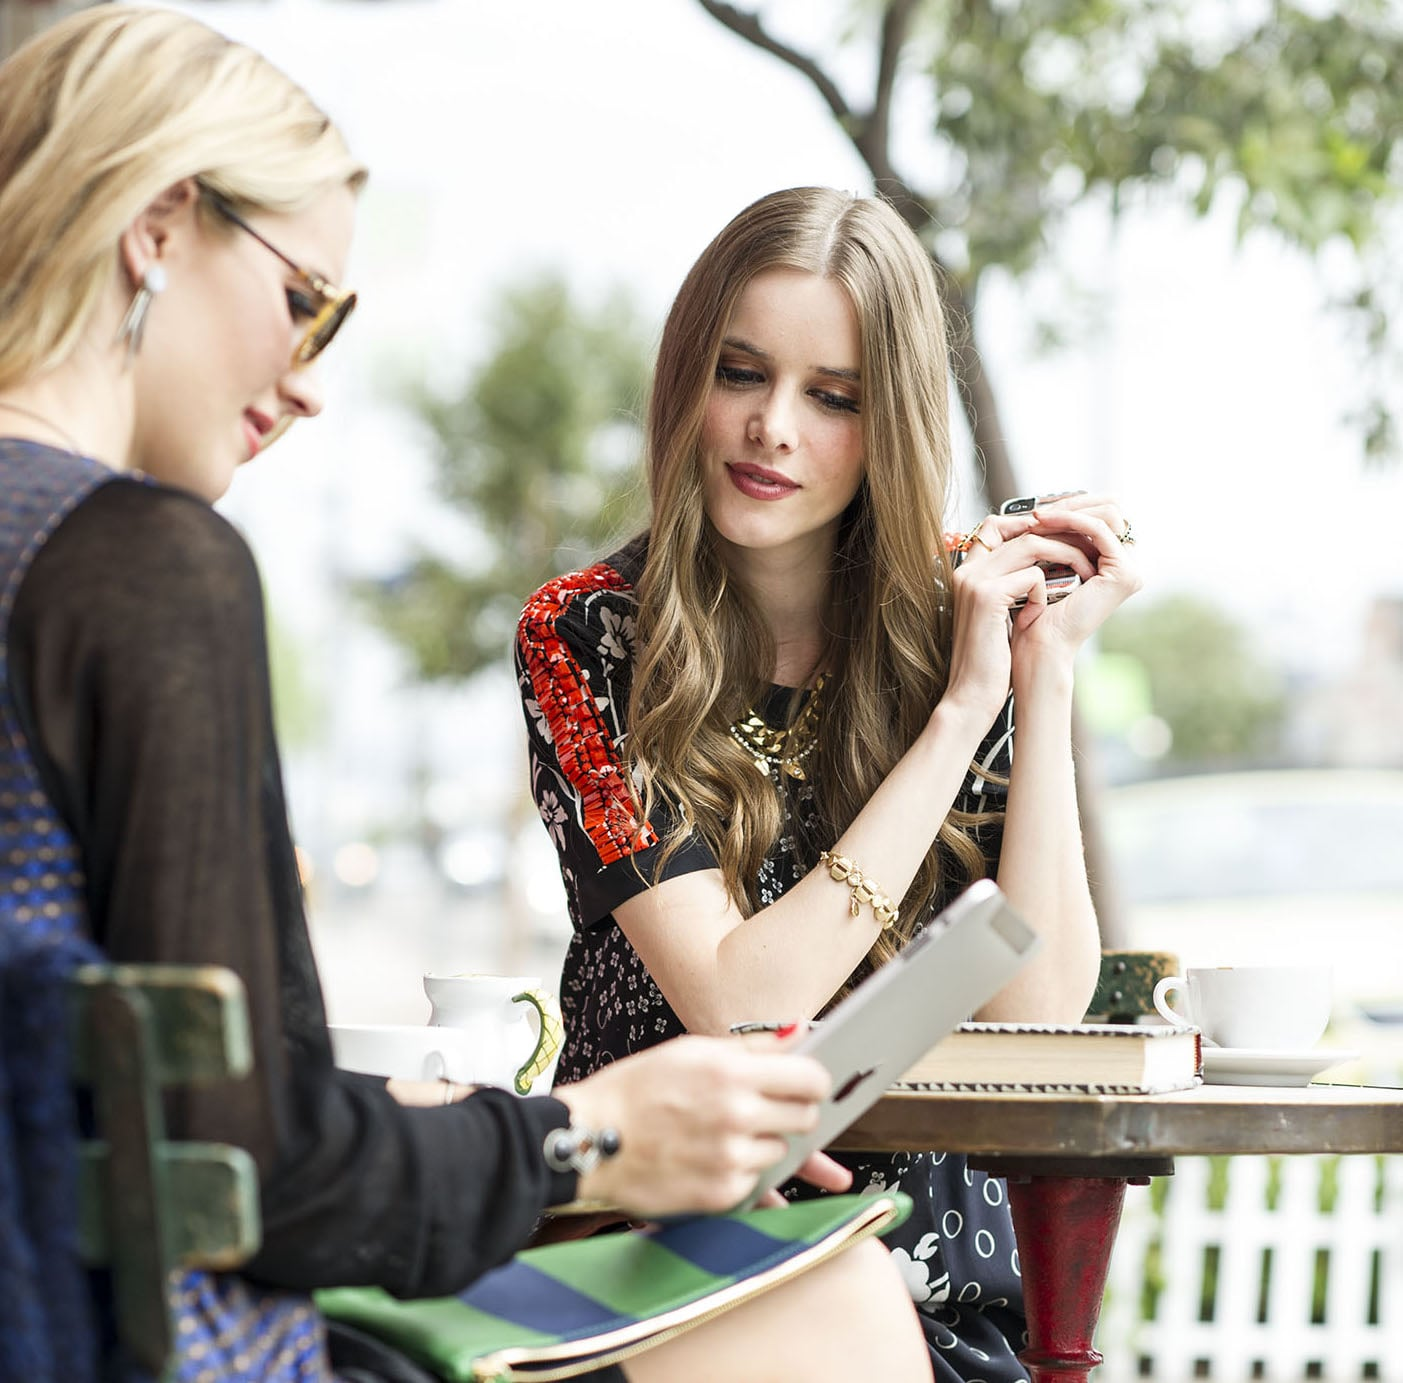 Popsugar Australia Smart Living: Good Questions To Ask During An Interview